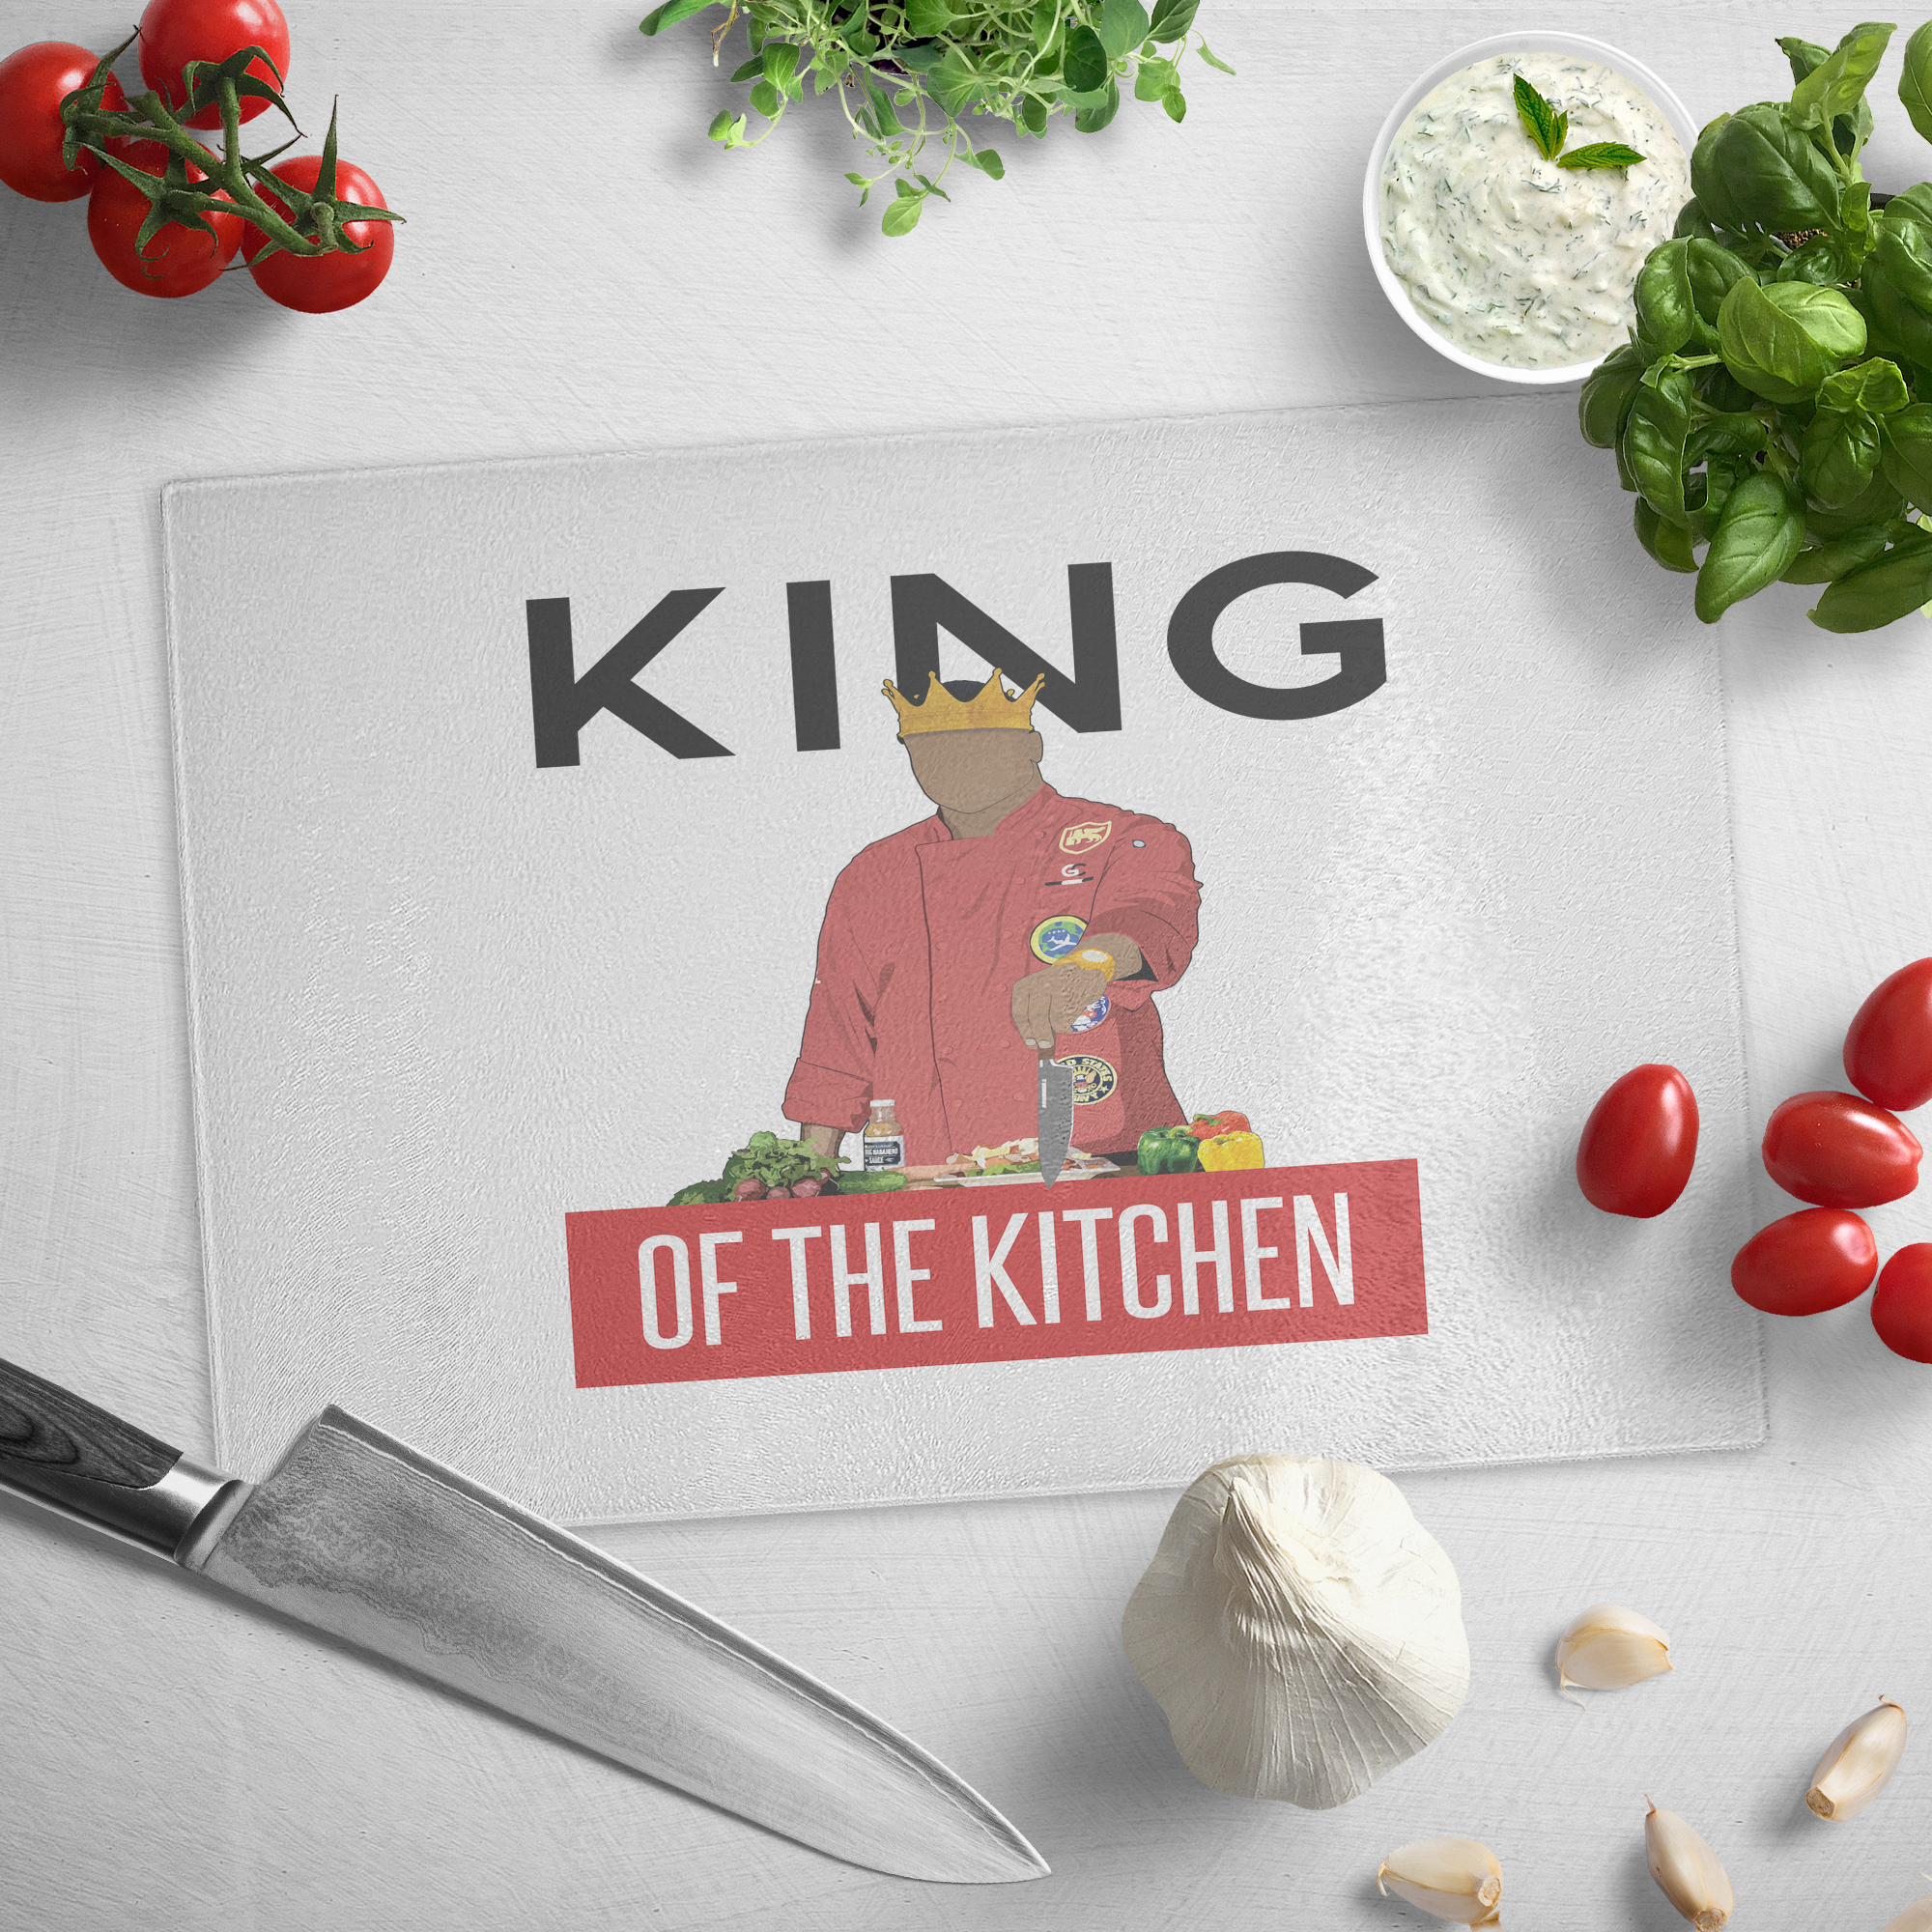 CG KOK Cutting board